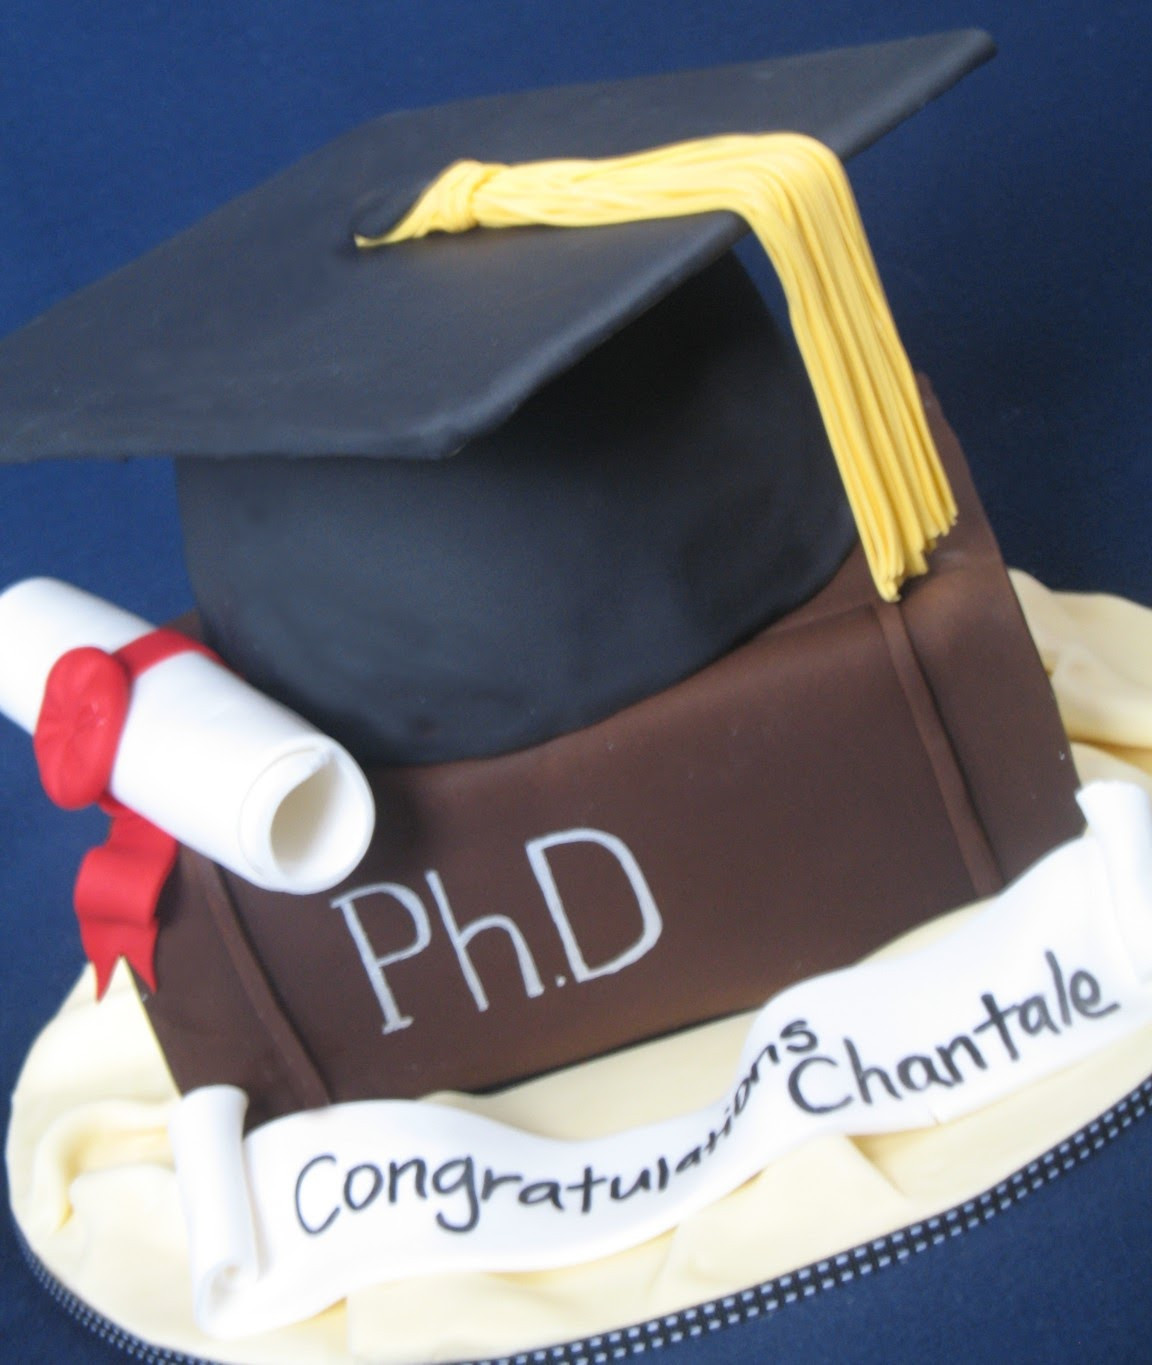 Doctoral Graduation Party Ideas  Blissfully Sweet A Graduation Cake fit for a PhD